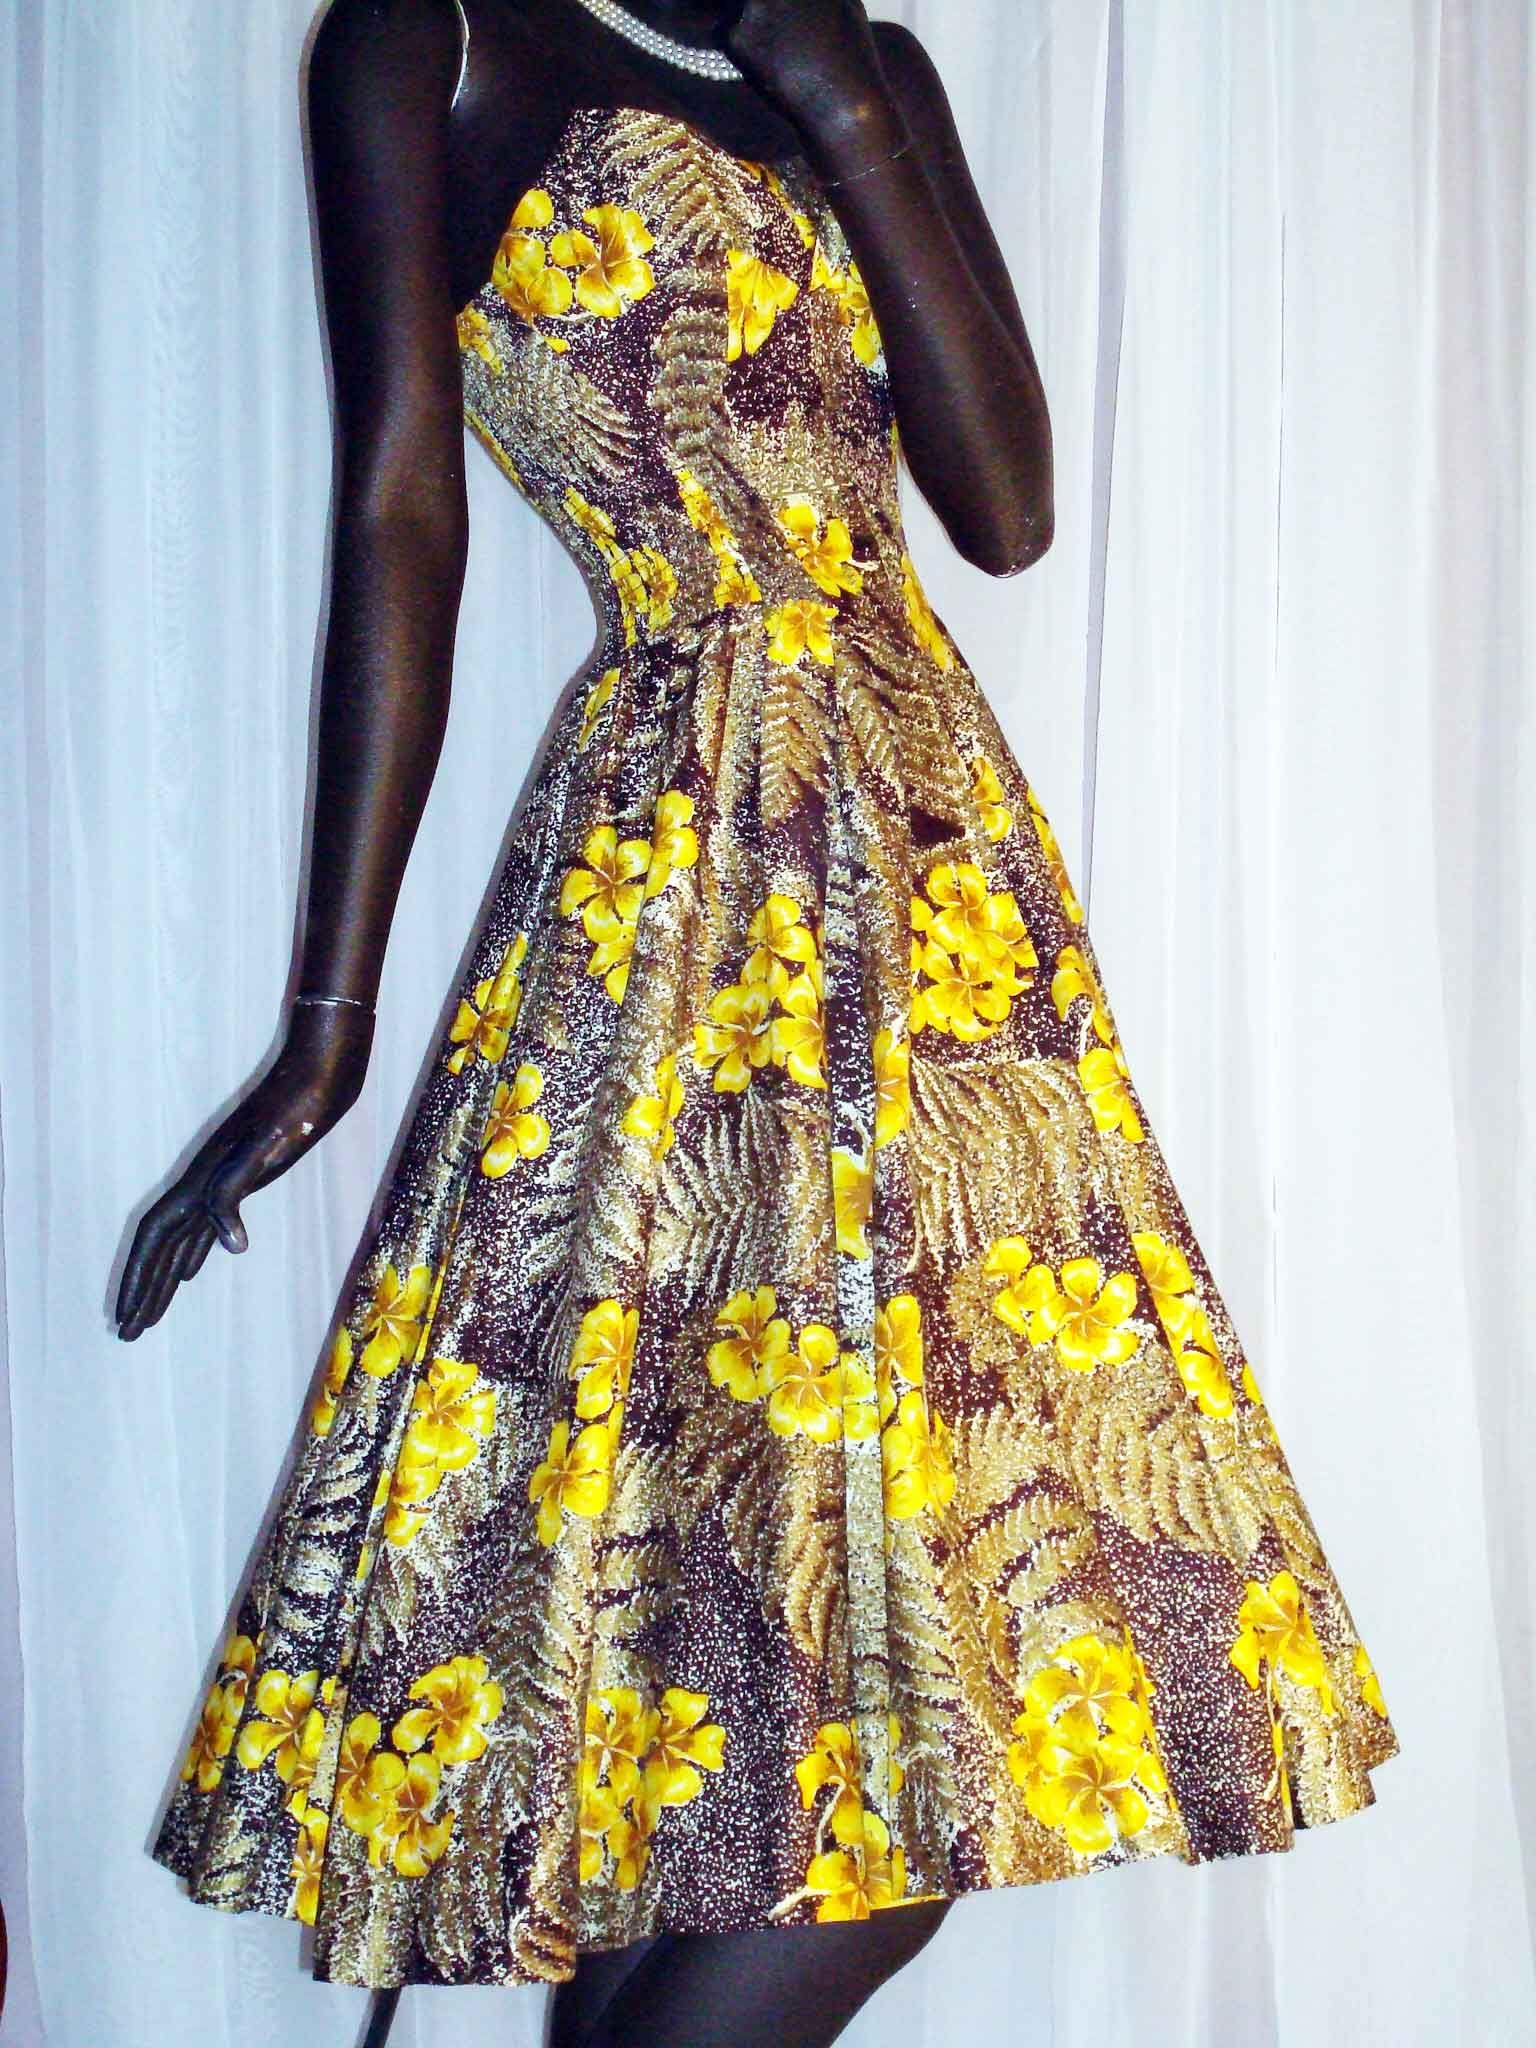 1950s Yellow Hibiscus Cotton Cocktail/Sundress by Alfred Shaheen.  The yellow hibiscus is the state flower of Hawaii and this print is quite rare.